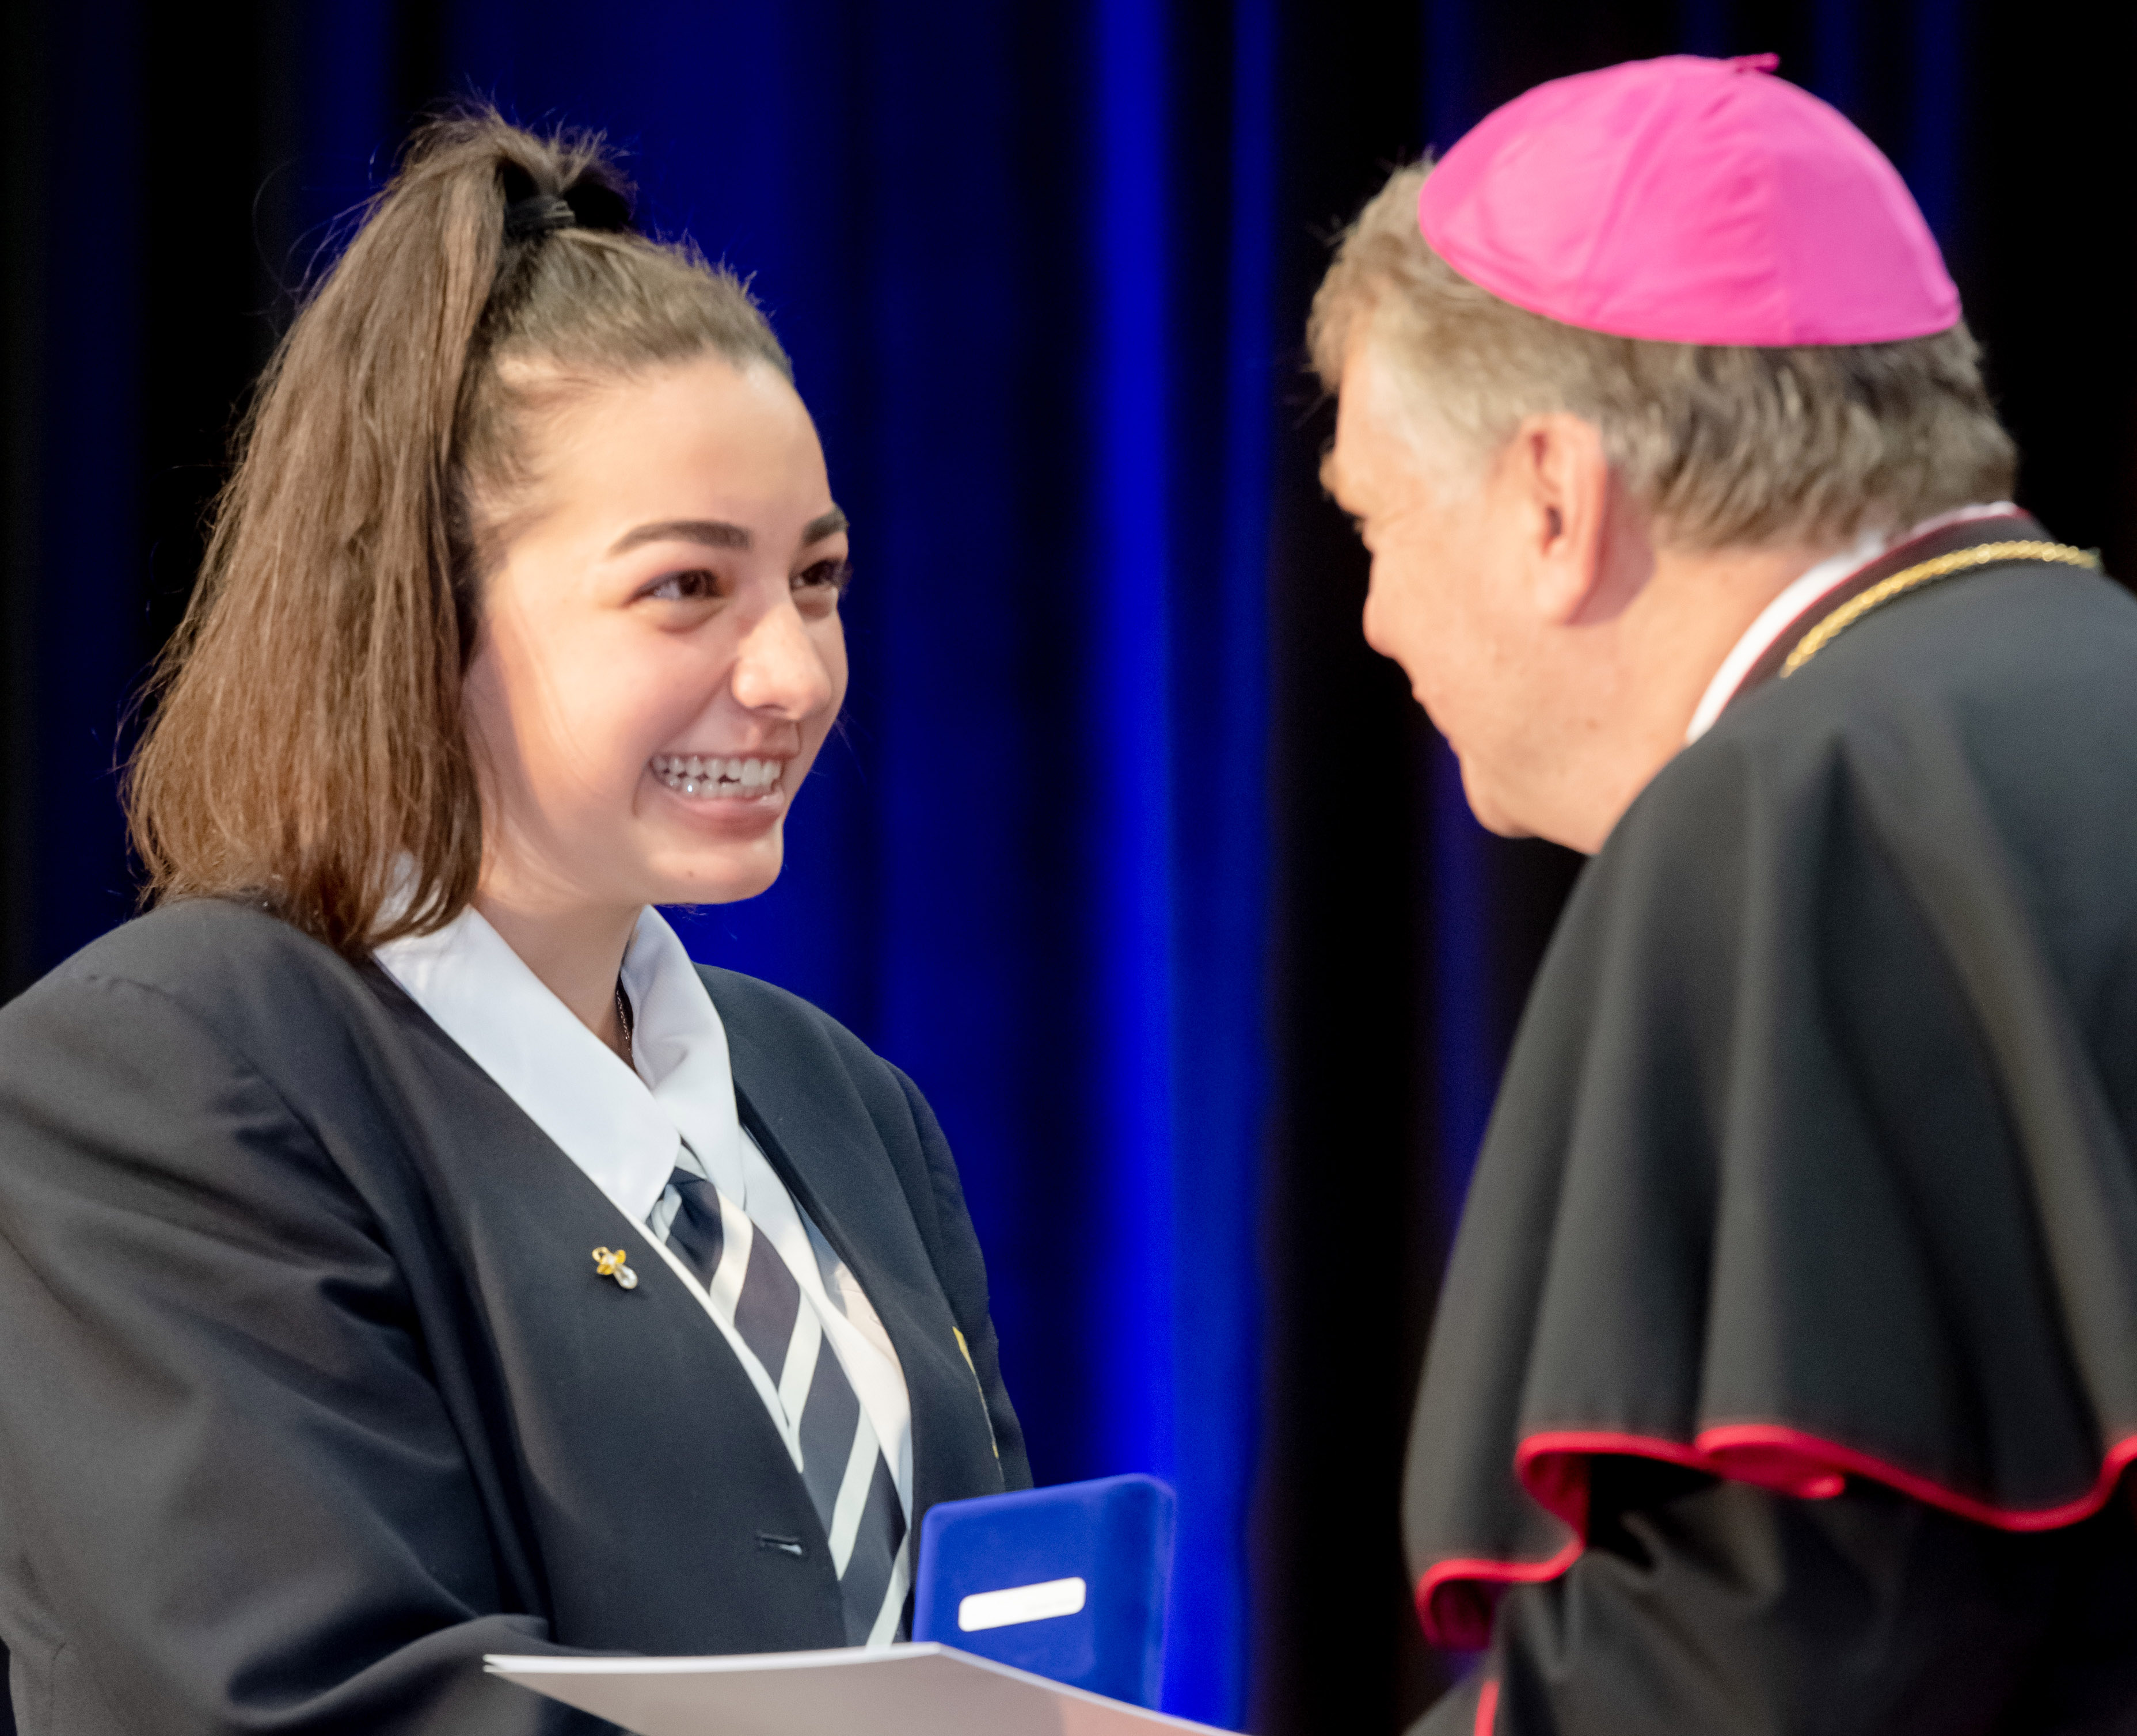 Archbishop of Sydney Award for Excellence